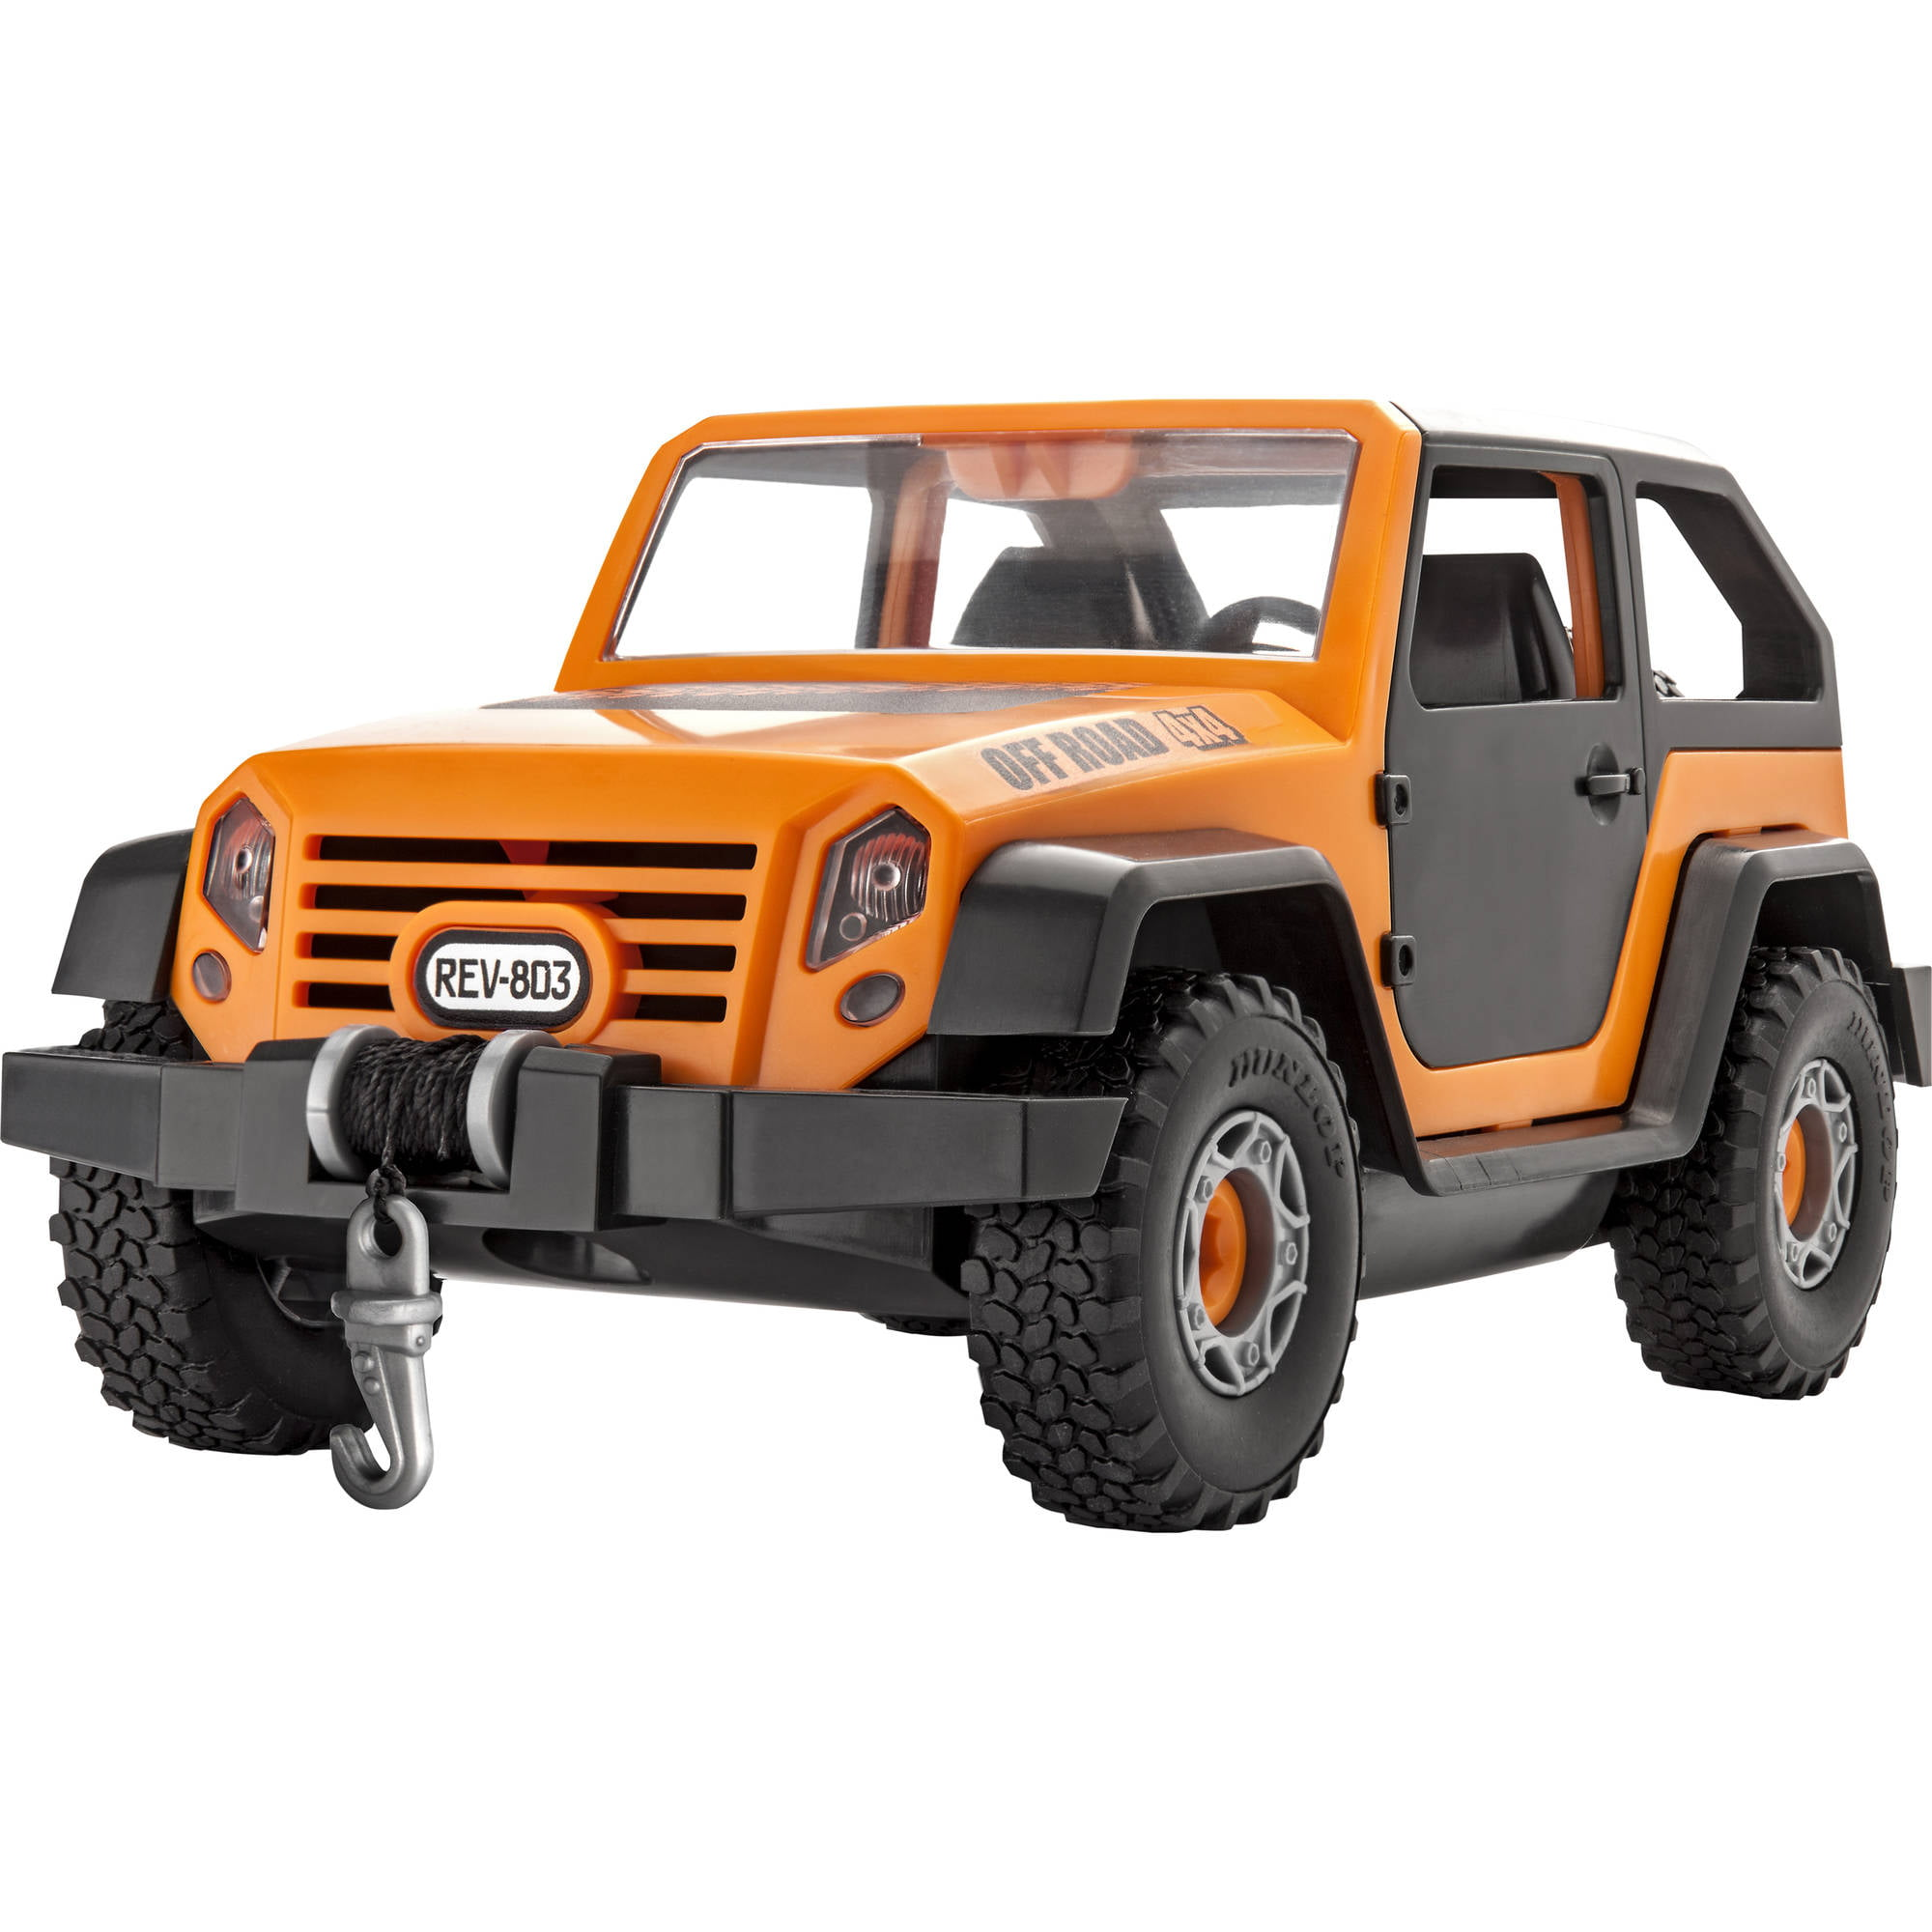 Revell Junior Kit Off-Road Vehicle Plastic Model Kit by Revell